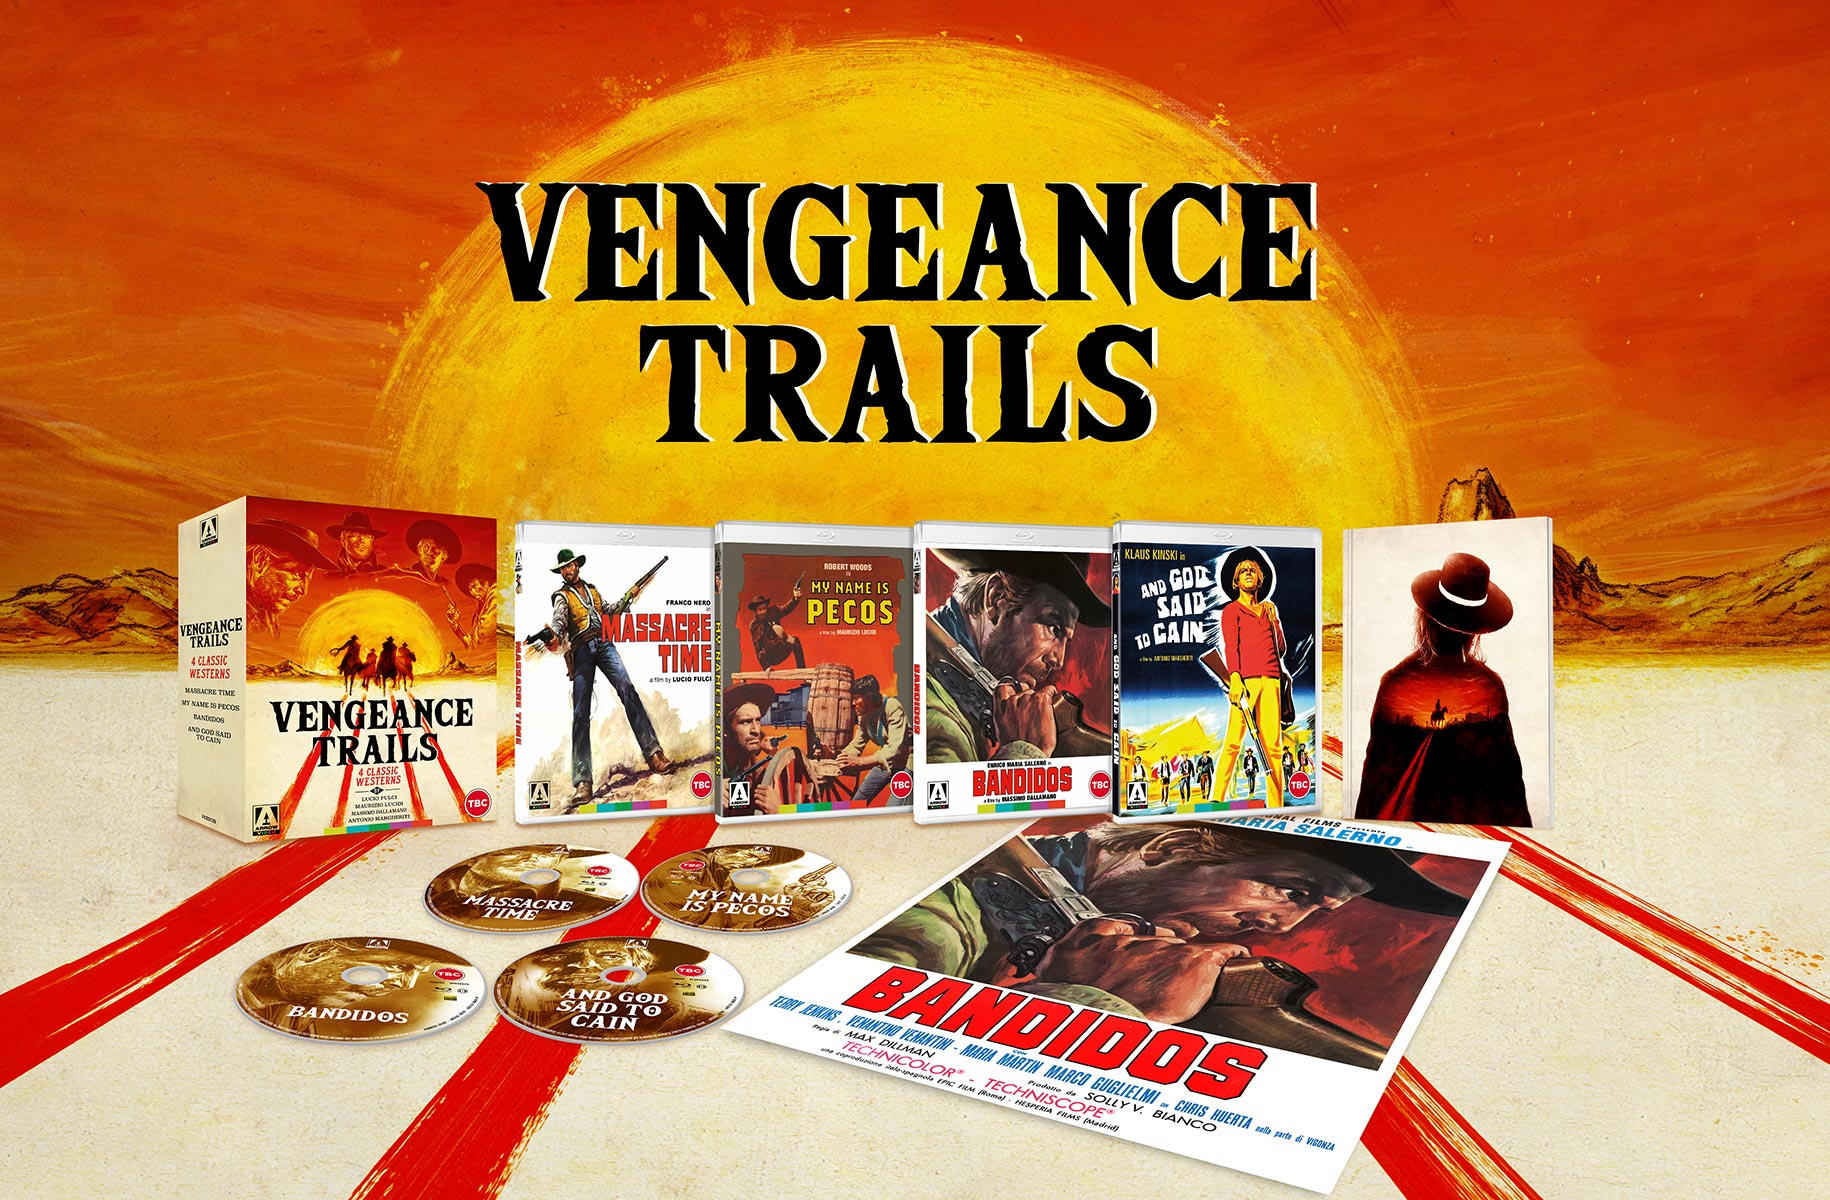 Blu-ray Review: Vengeance Trials